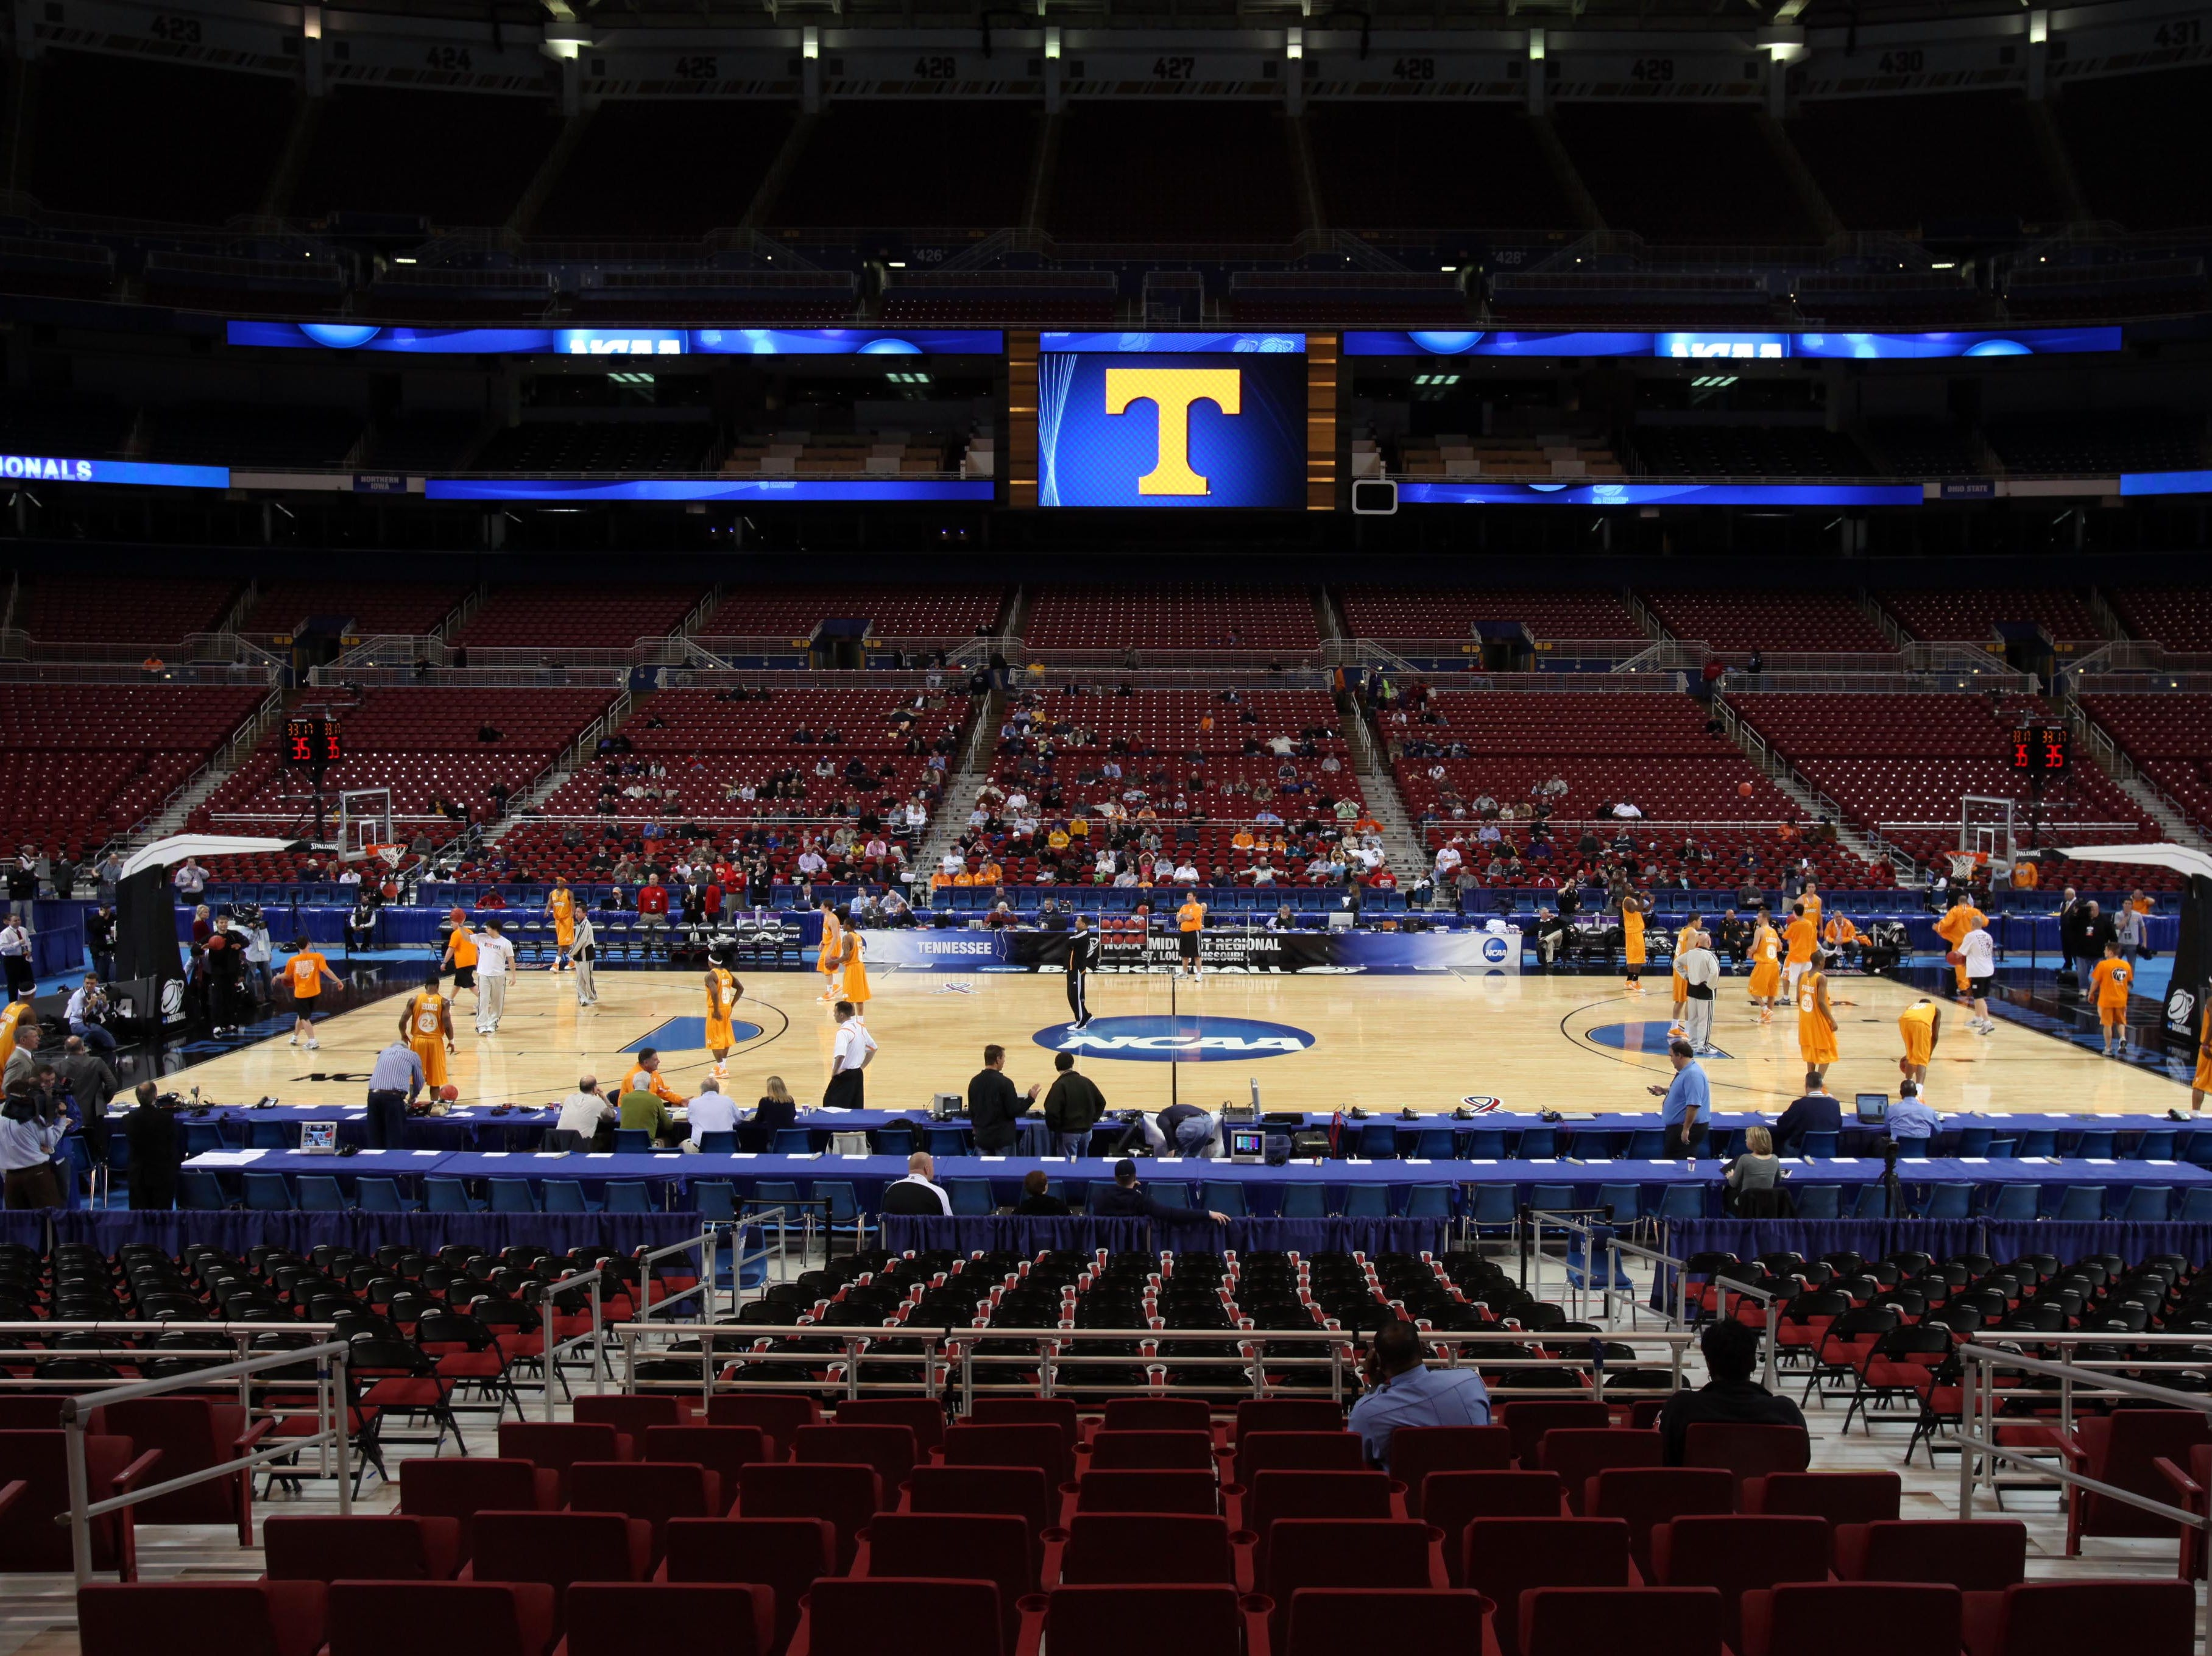 Tennessee holds an open practice session at the Edward Jones Dome in St. Louis, Mo., Thursday, Mar. 25, 2010.  The Vols will take on the Ohio State Buckeyes Friday evening during the NCAA regional tournament.